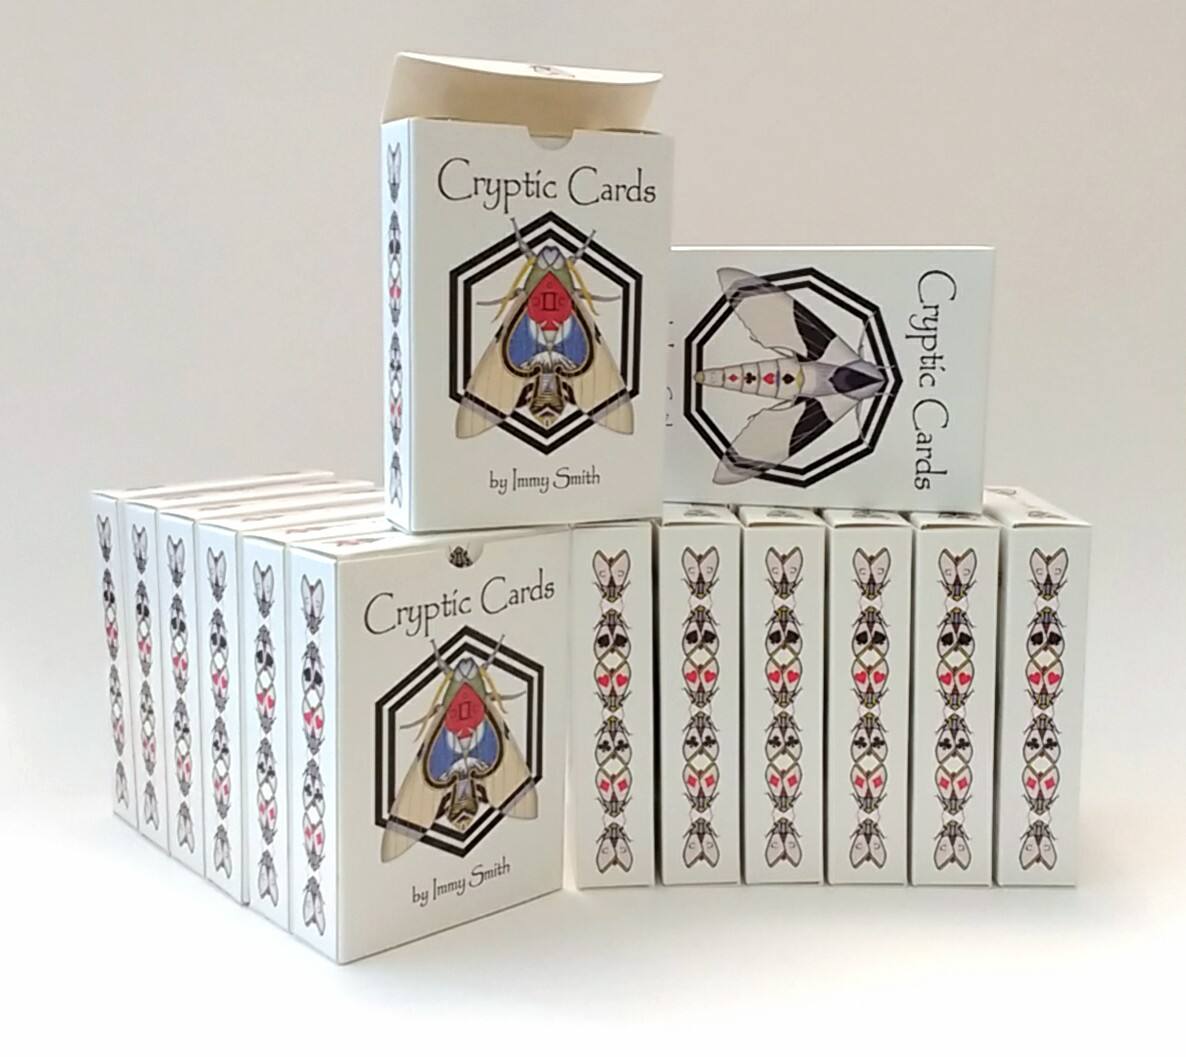 A brick (12 decks) of Cryptic Cards